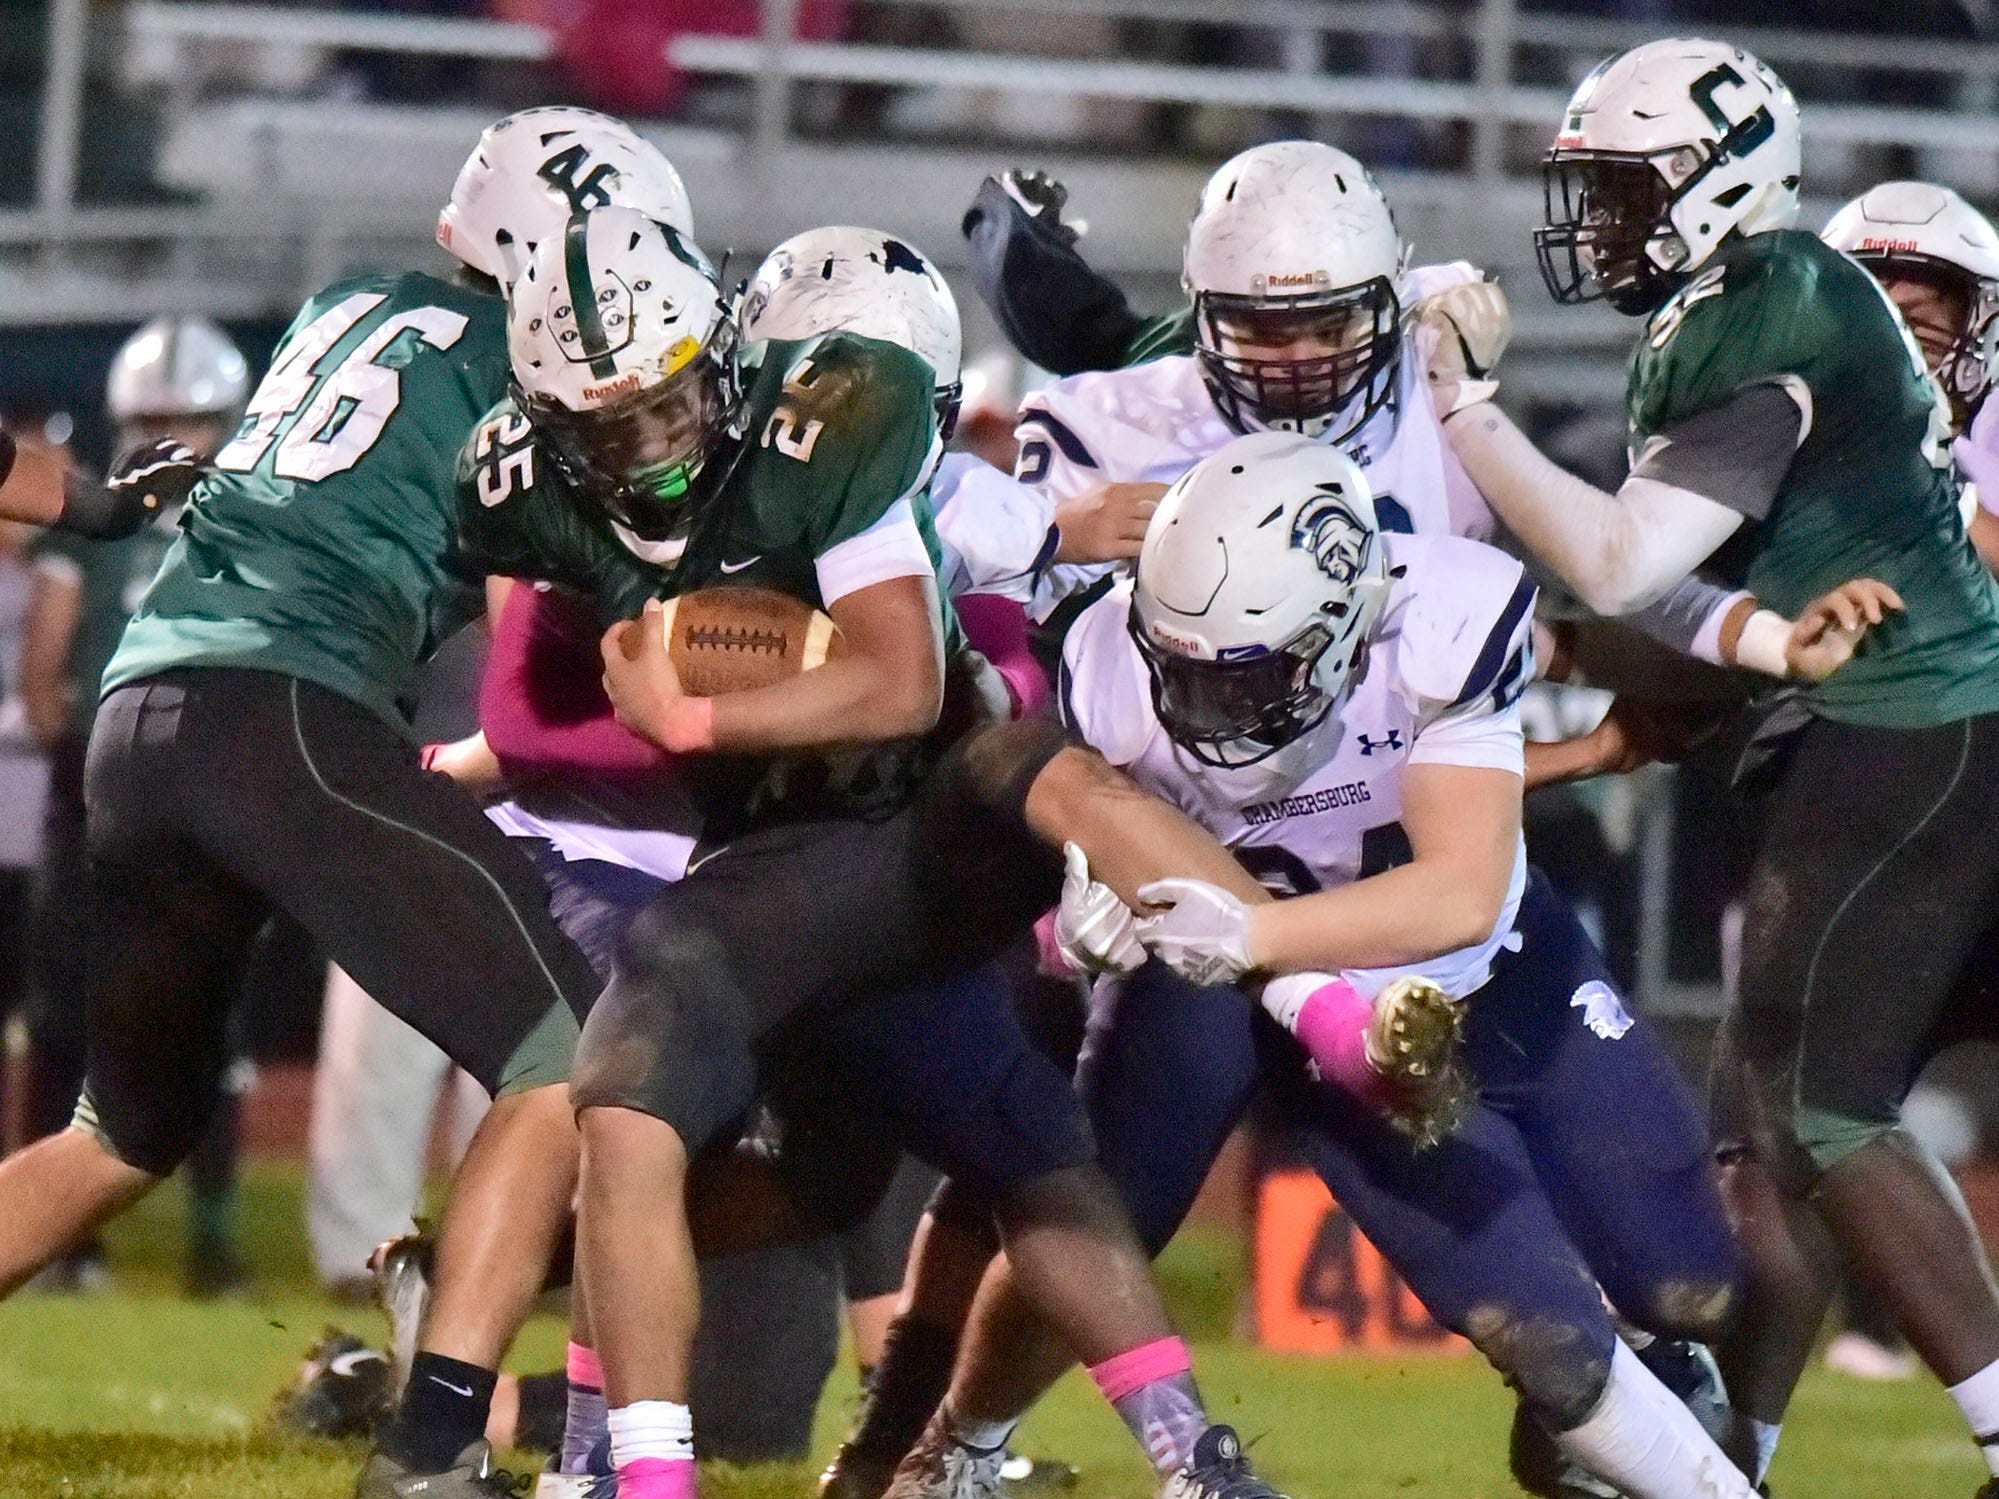 Chambersburg's Andrew Shetter (24) gets a hold of Carlisle's Wyatt Vioral's (25) leg for a tackle during a 26-20 Trojan victory.